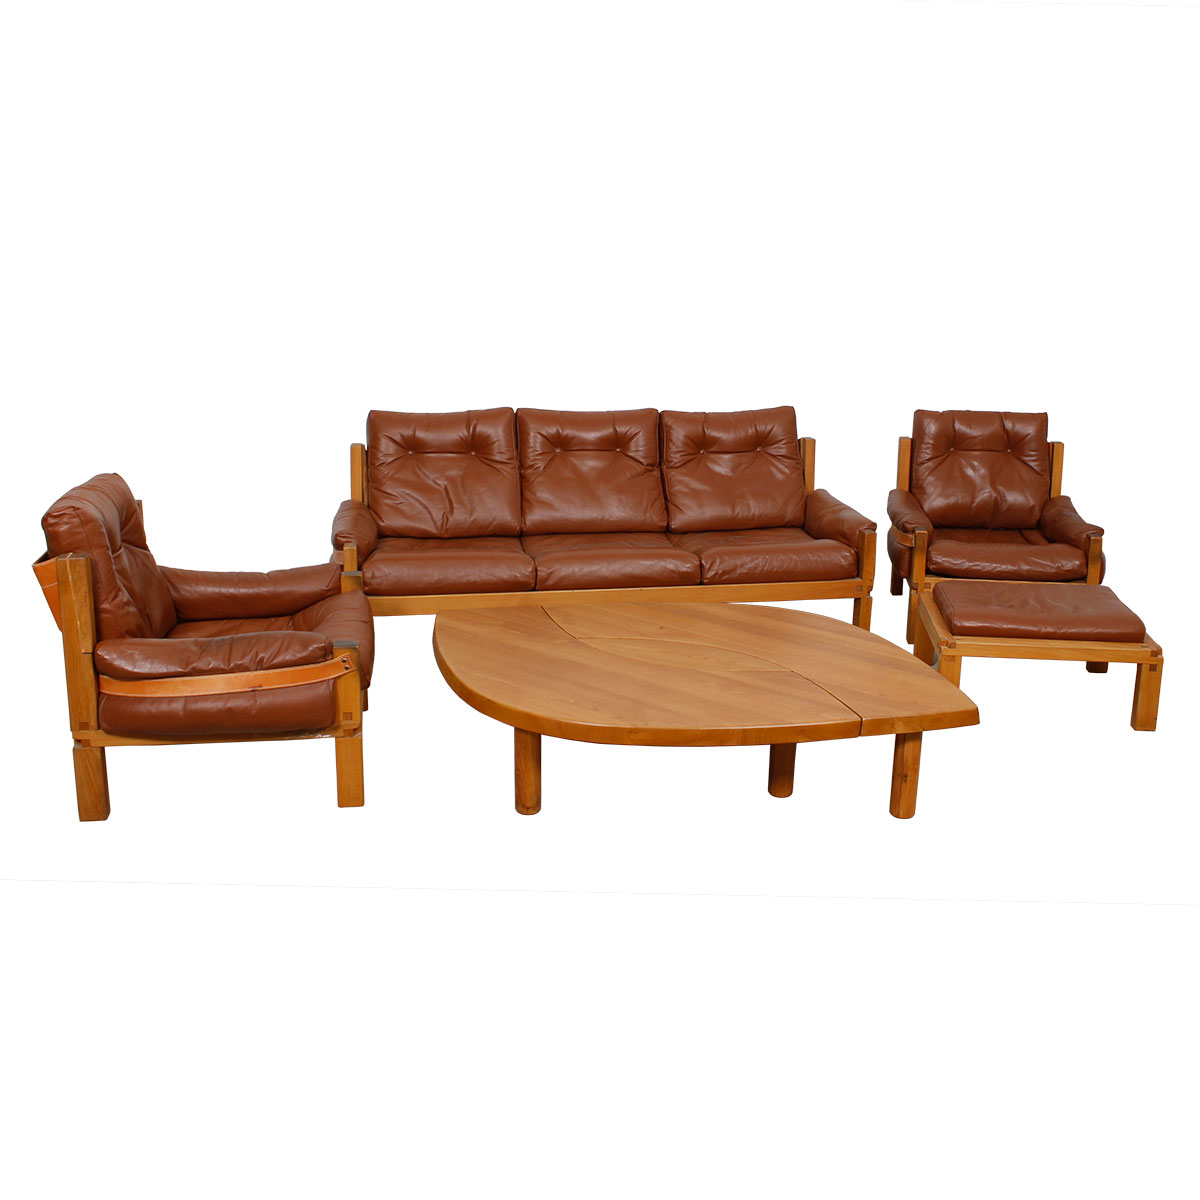 Rare Pierre Chapo Solid Elm & Leather Living Room Set w/ Catalog & Provenance